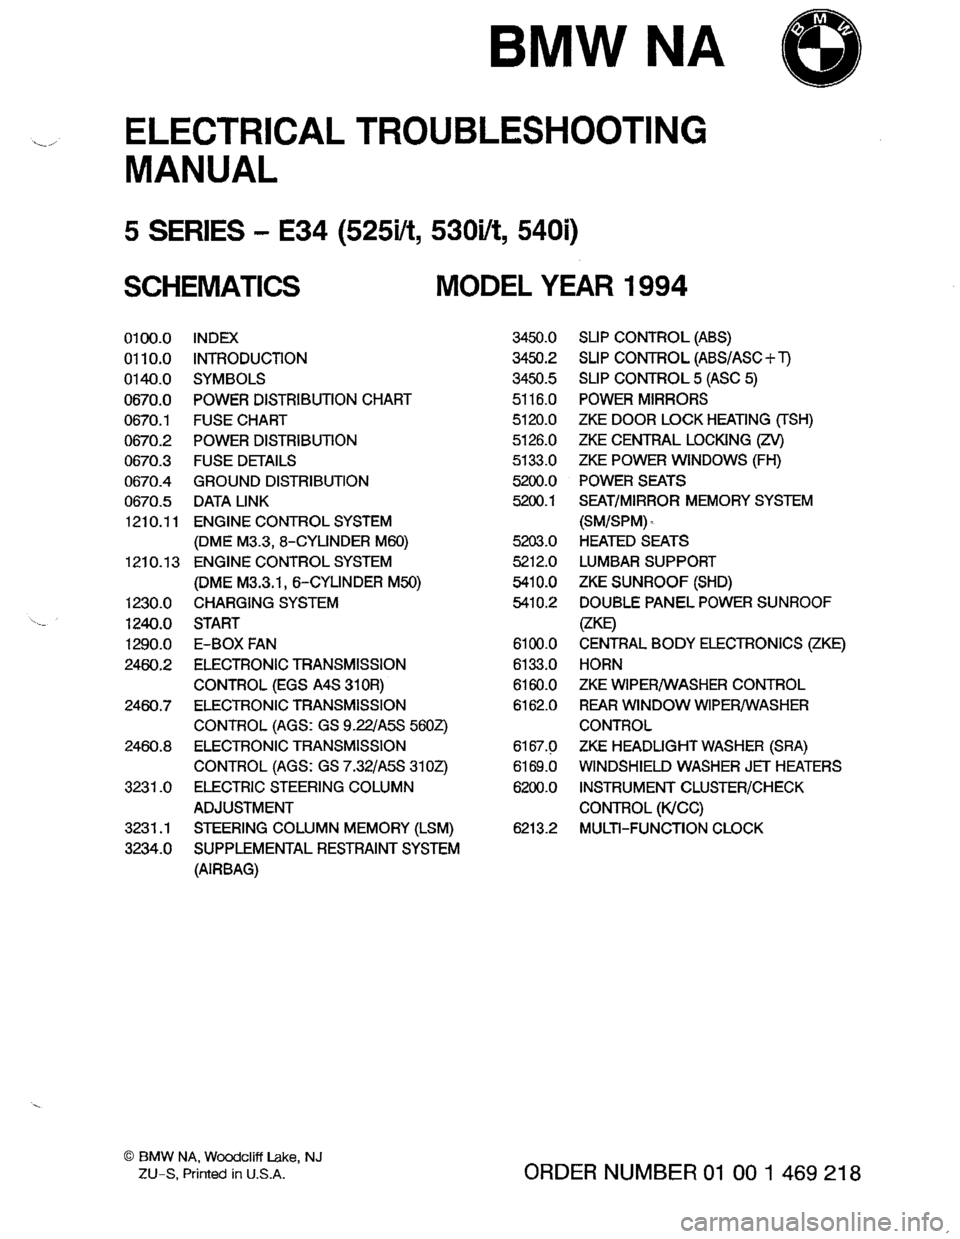 Bmw E34 electrical troubleshooting Manual